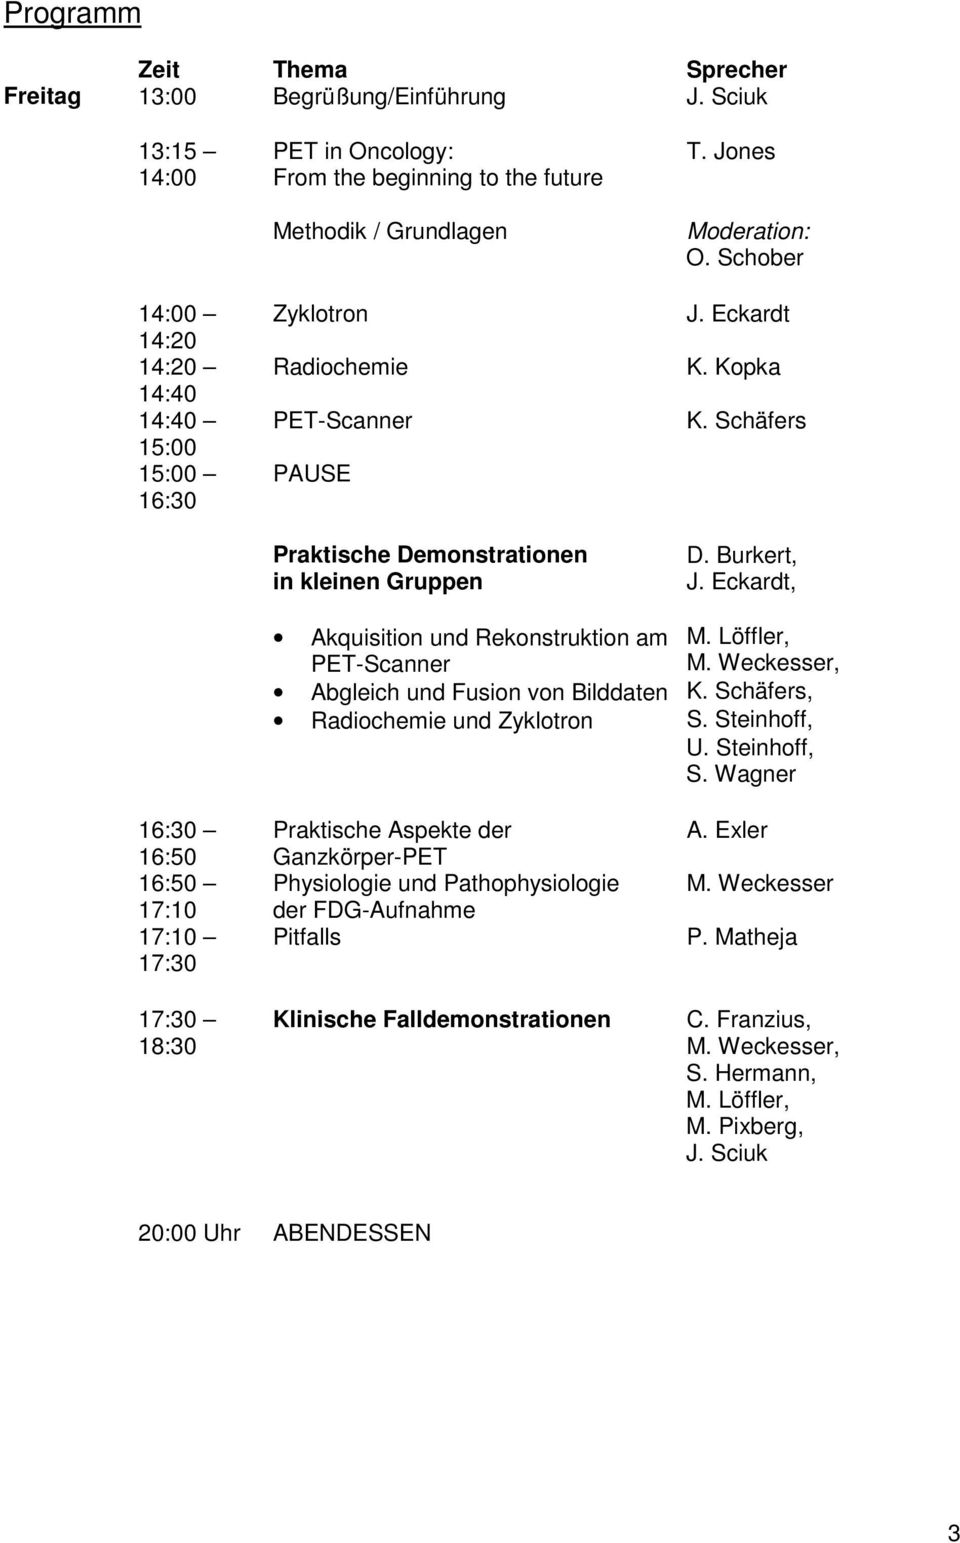 Demonstrationen in kleinen Gruppen T. Jones Moderation: O. Schober J. Eckardt K. Kopka K. Schäfers D. Burkert, J. Eckardt, Akquisition und Rekonstruktion am M. Löffler, PET-Scanner M.